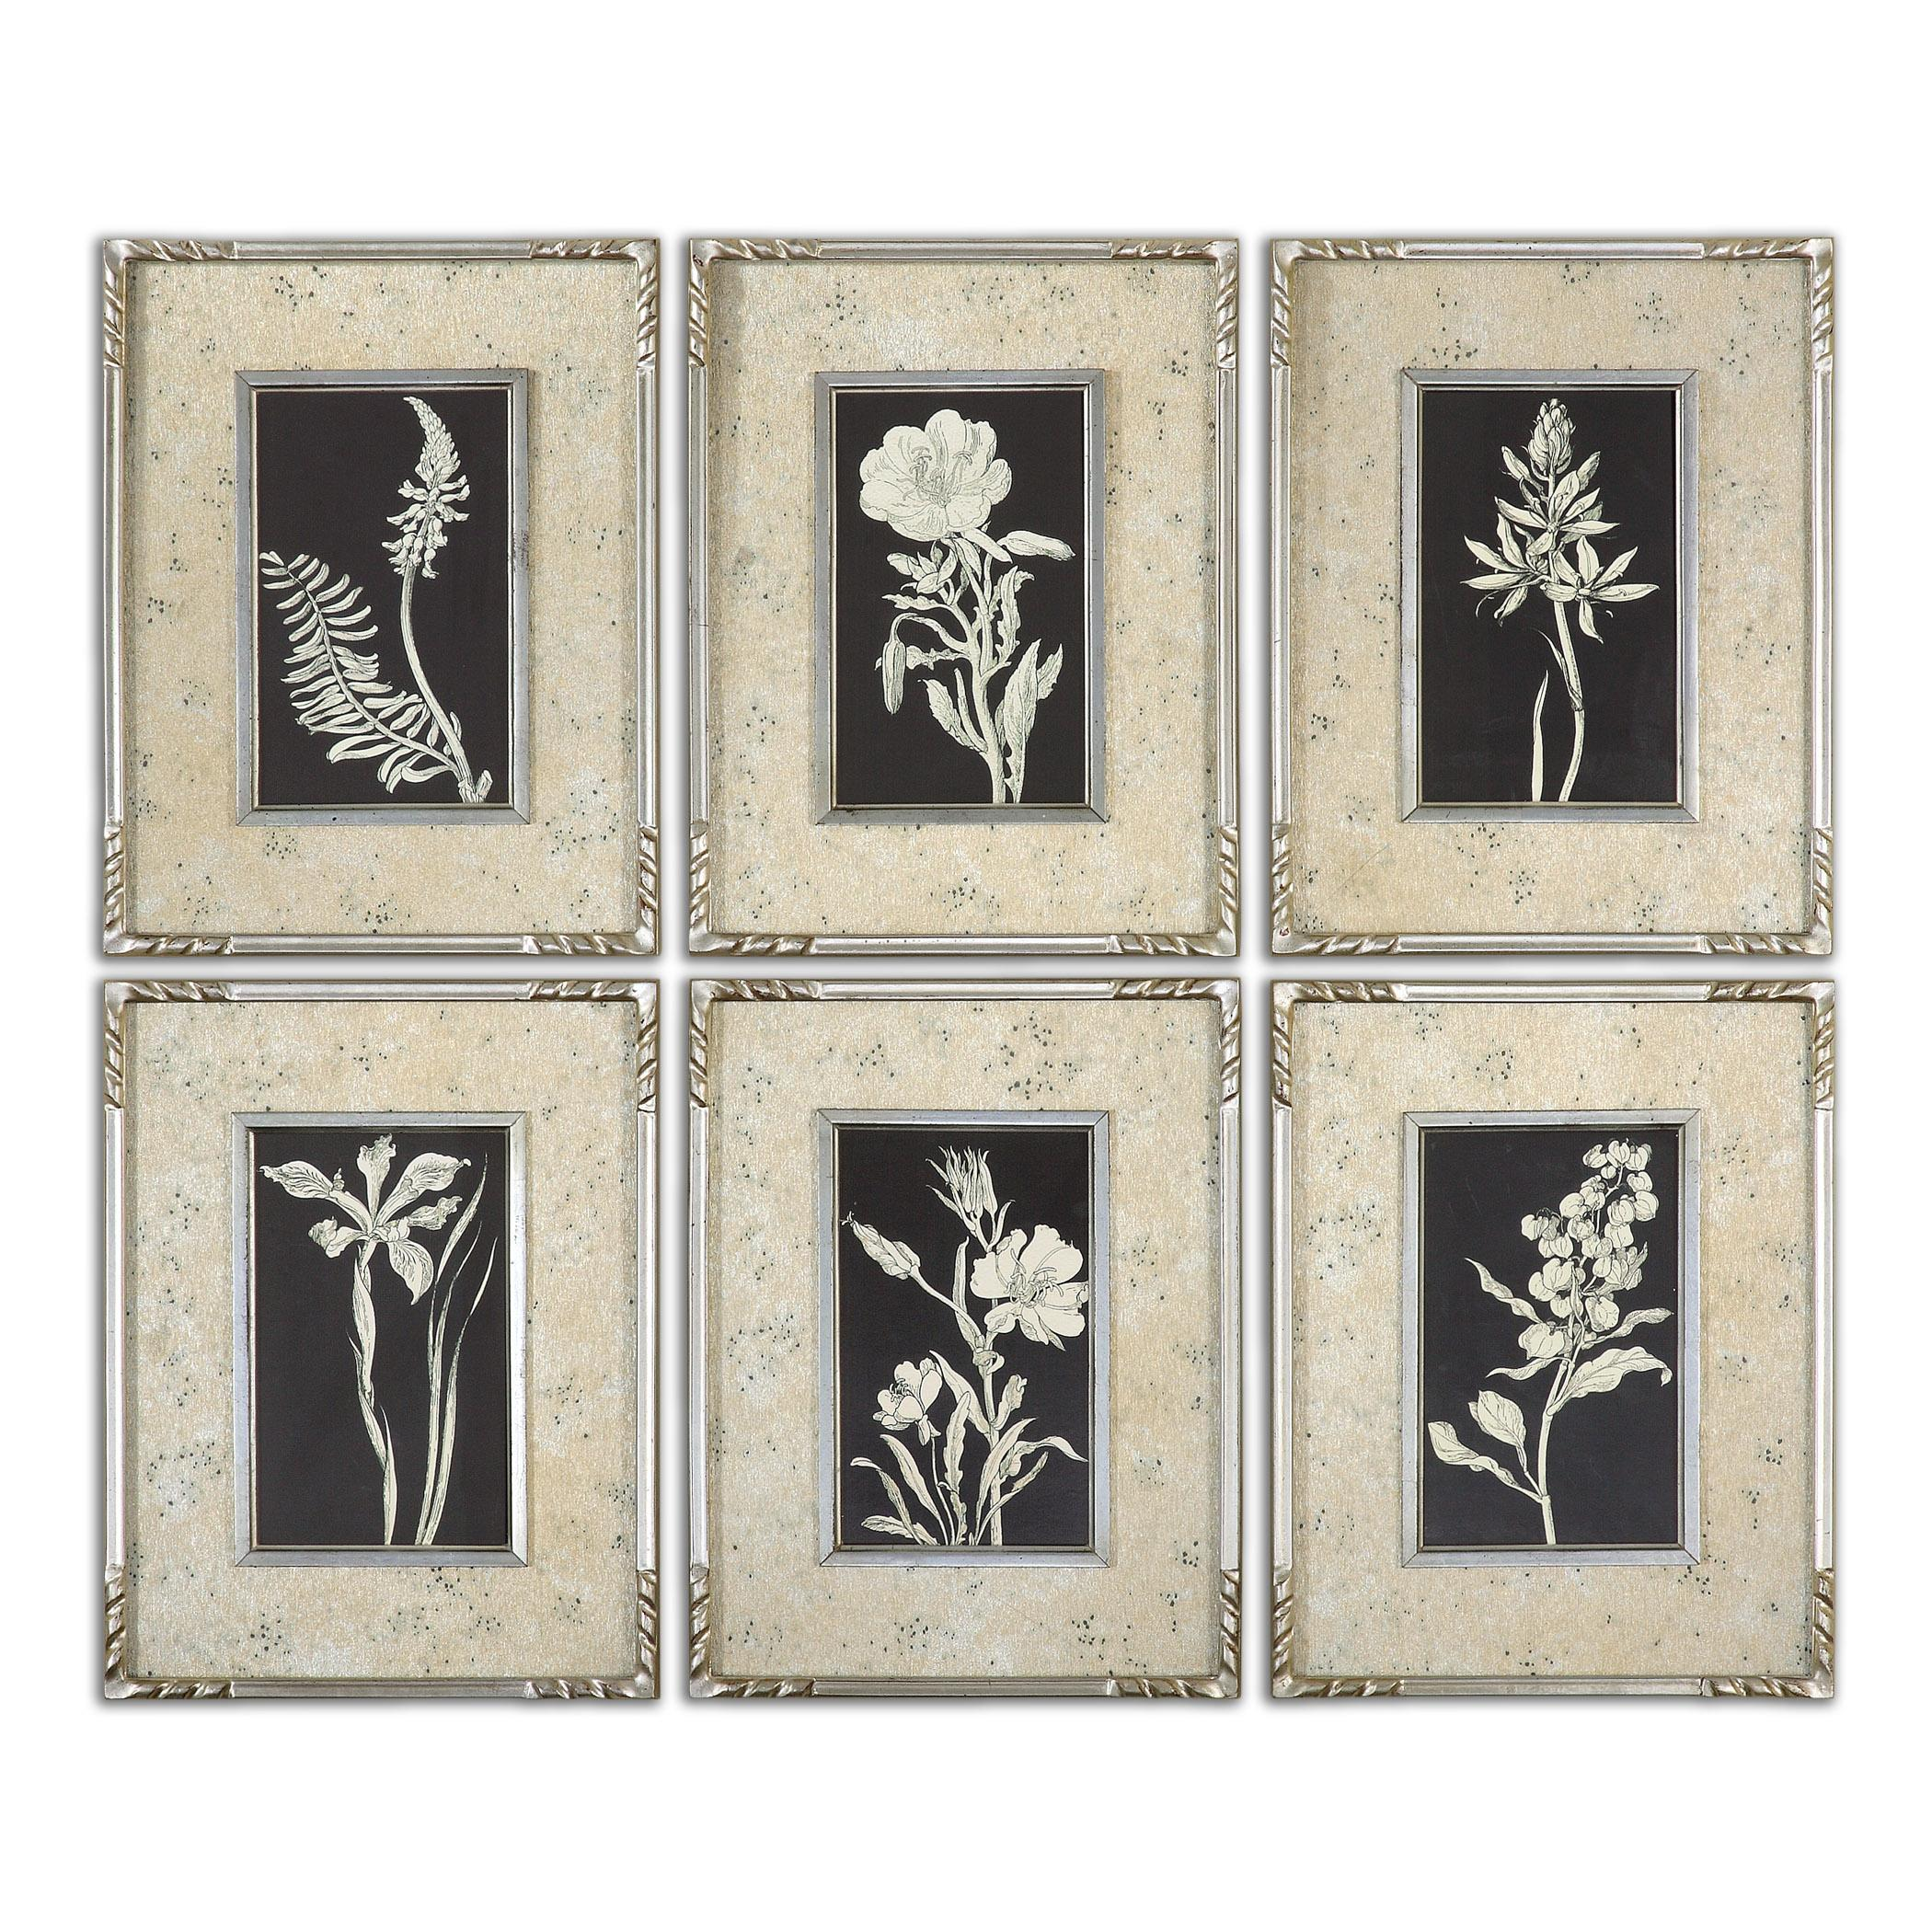 Uttermost Art Glowing Florals Framed Art, Set of 6 - Item Number: 41535